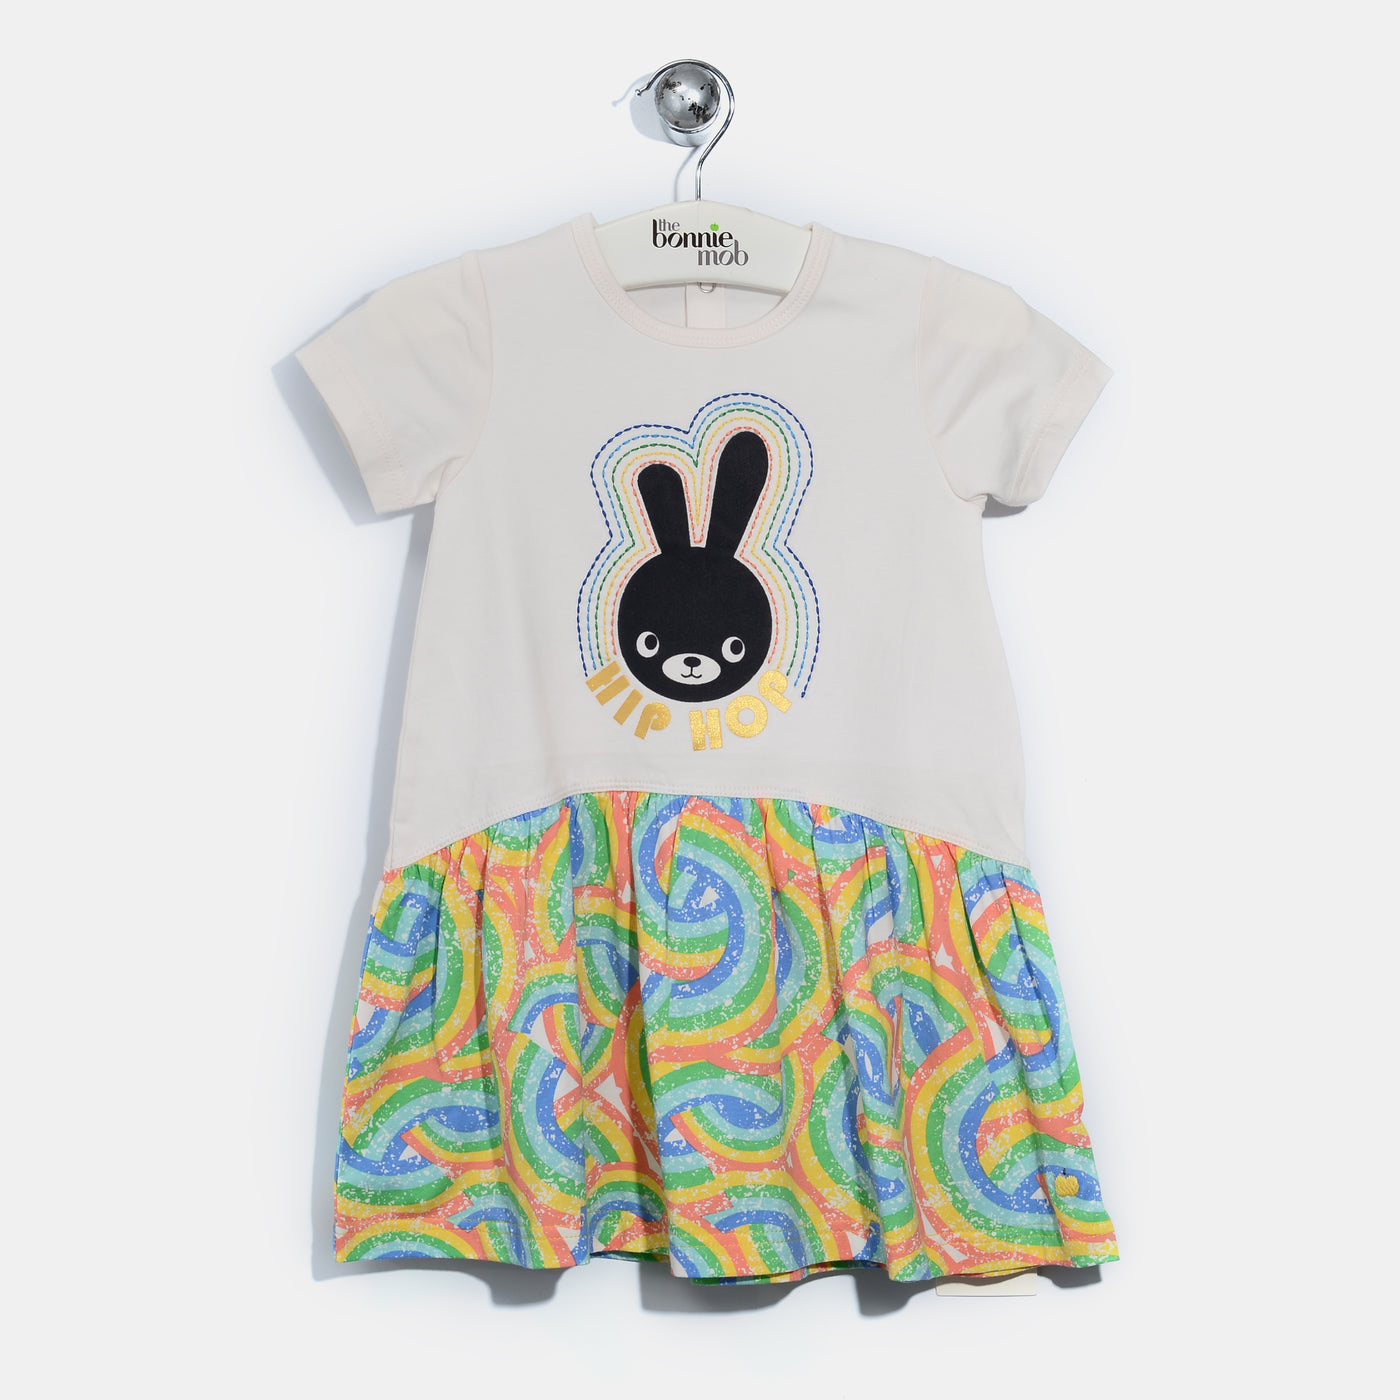 L-BRIE-Hip Hop Bunny Dress-Kids Girl-Rainbow